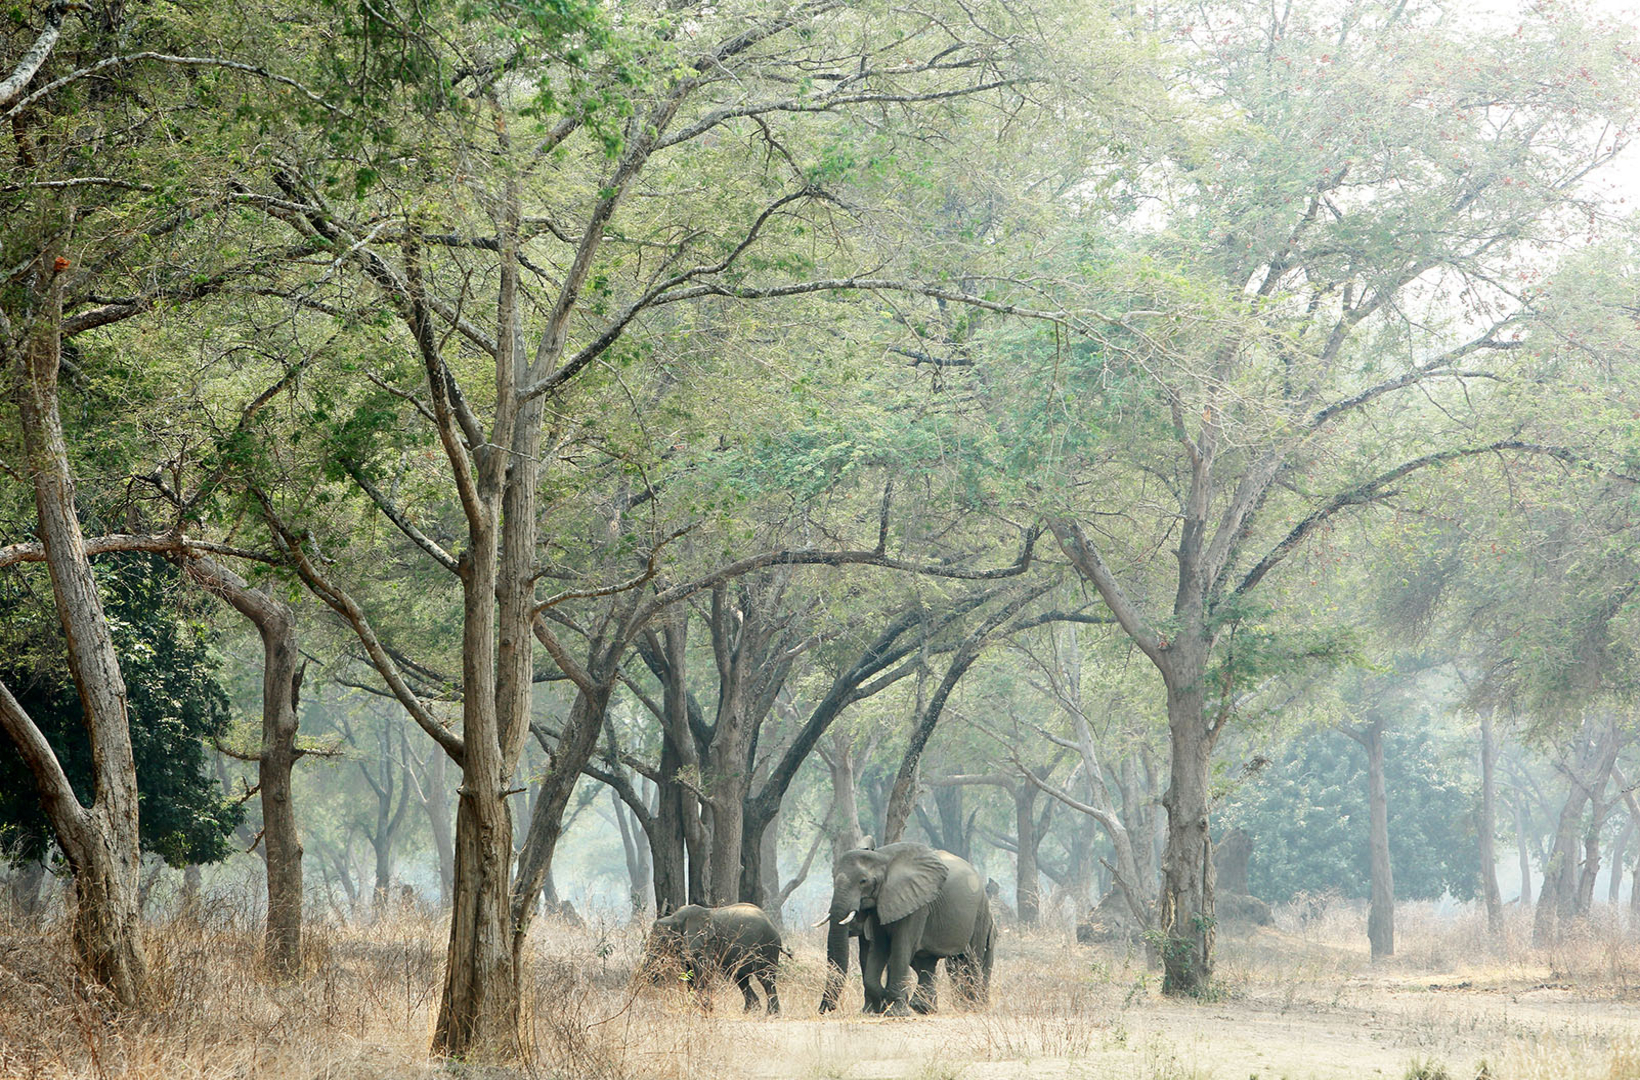 A small herd of African elephants walk through a riverine forest of Mana Pools National Park Zimbabwe